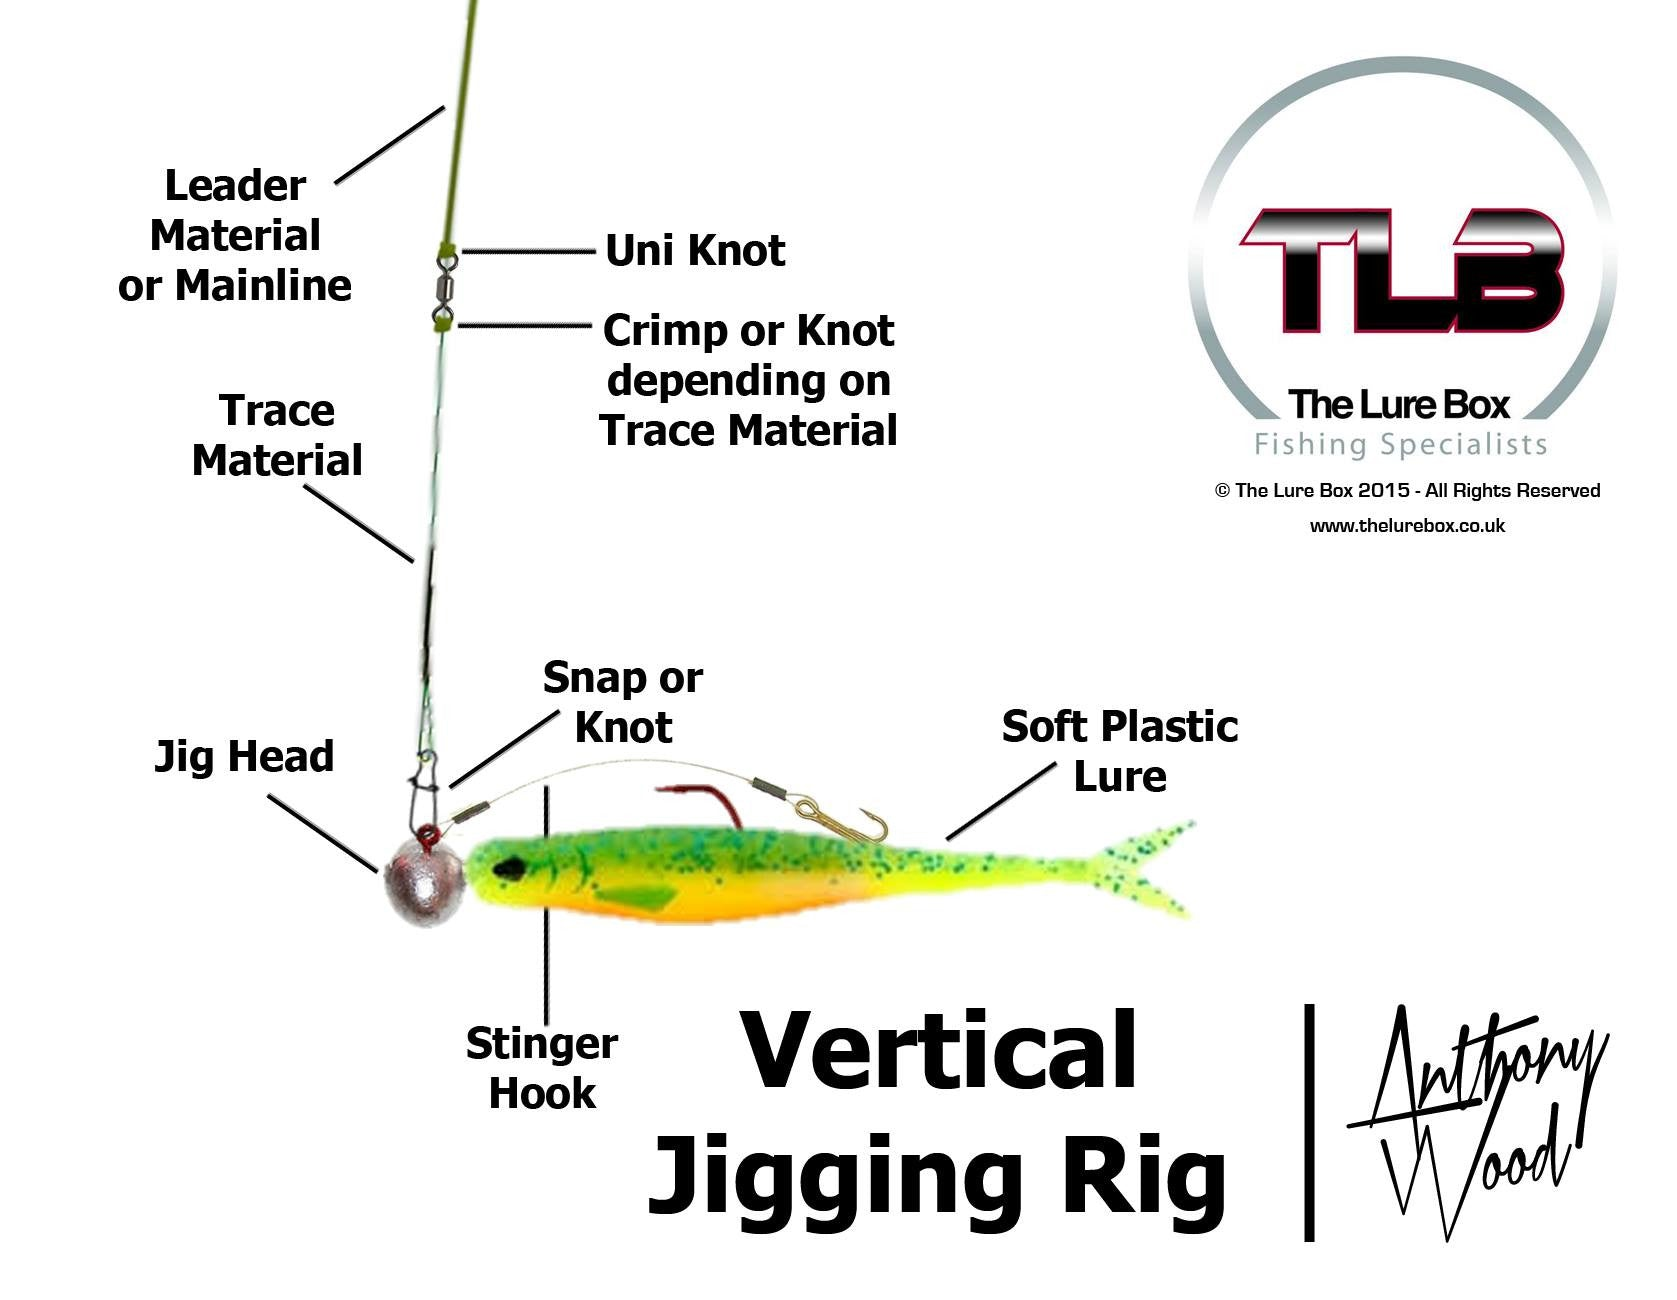 Vertical Jigging Rig Diagram - The Lure Box